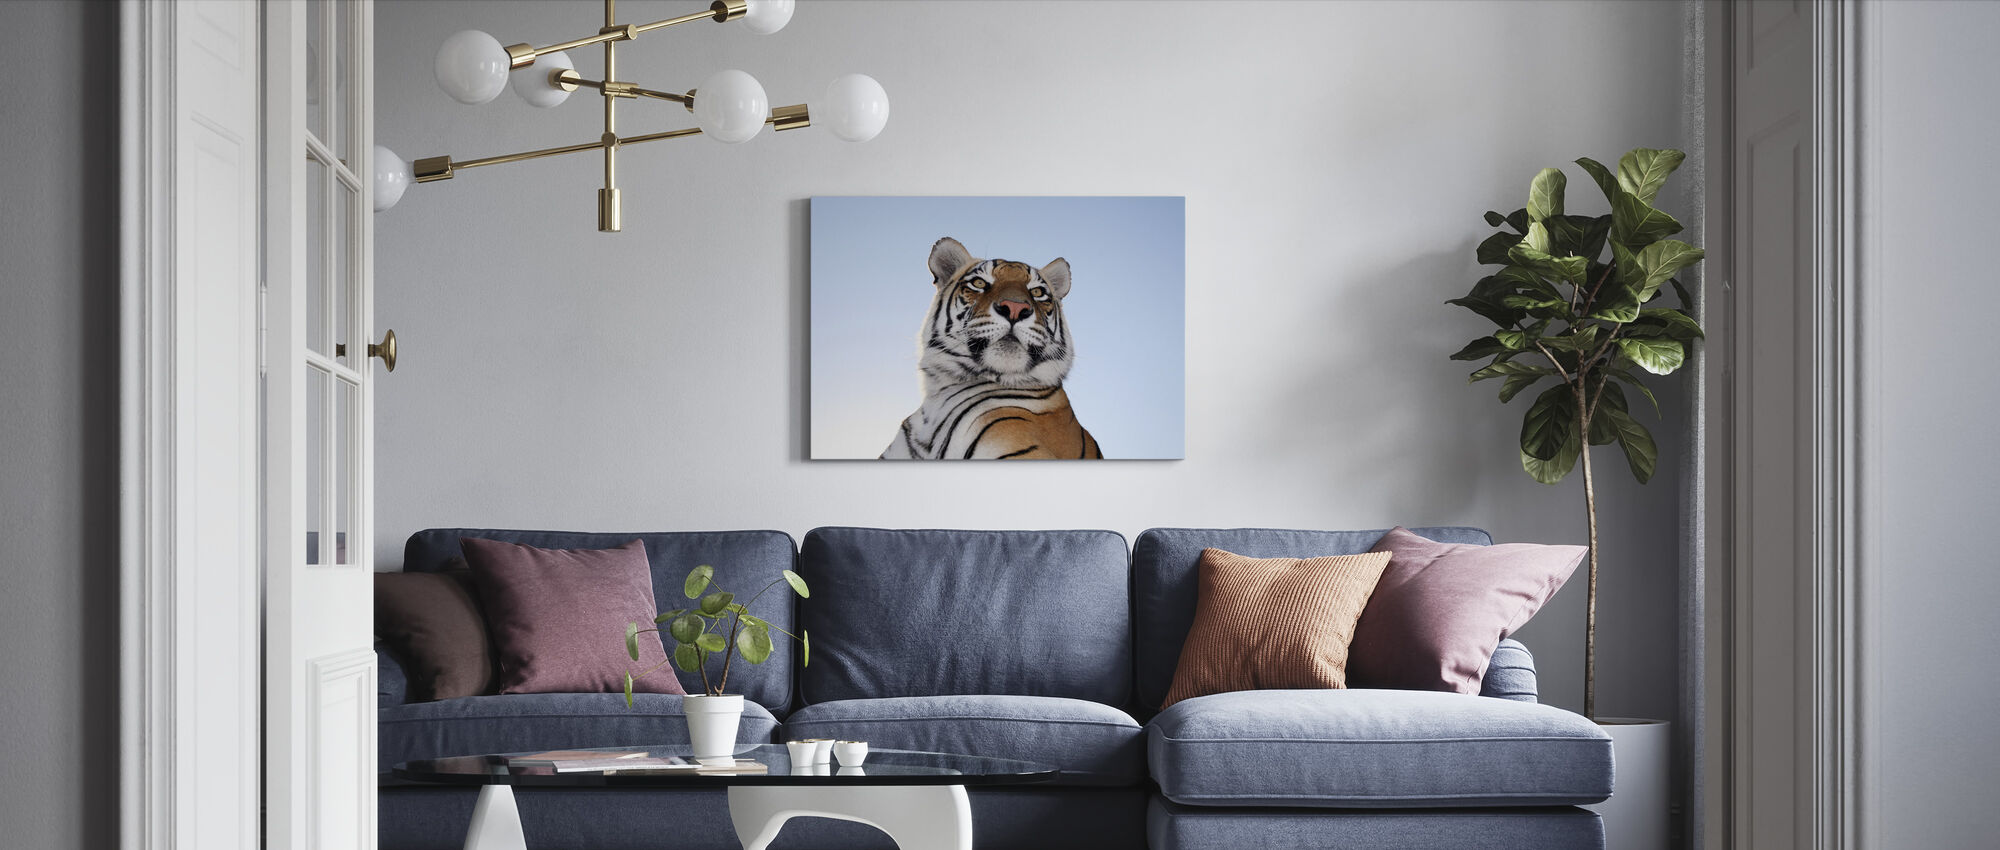 King of the Mountain - Canvas print - Living Room